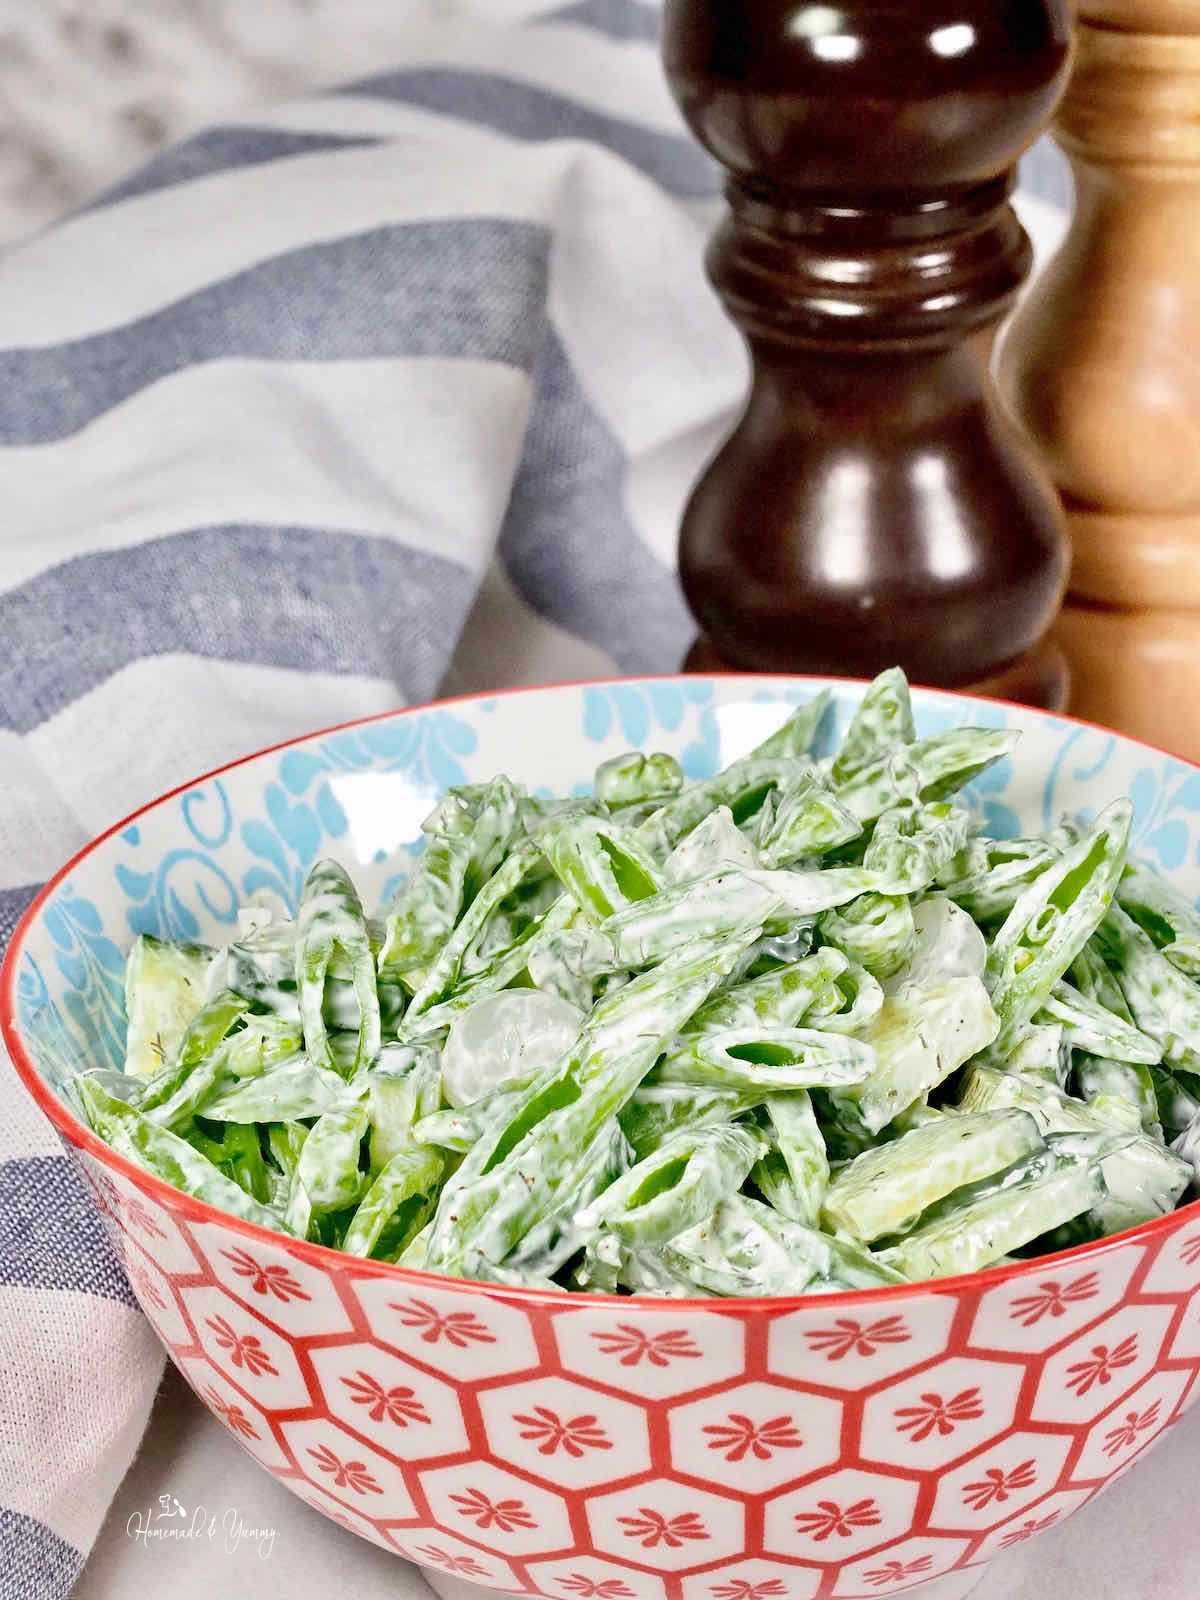 A bowl of snap pea salad with cucumber and pickled onions.